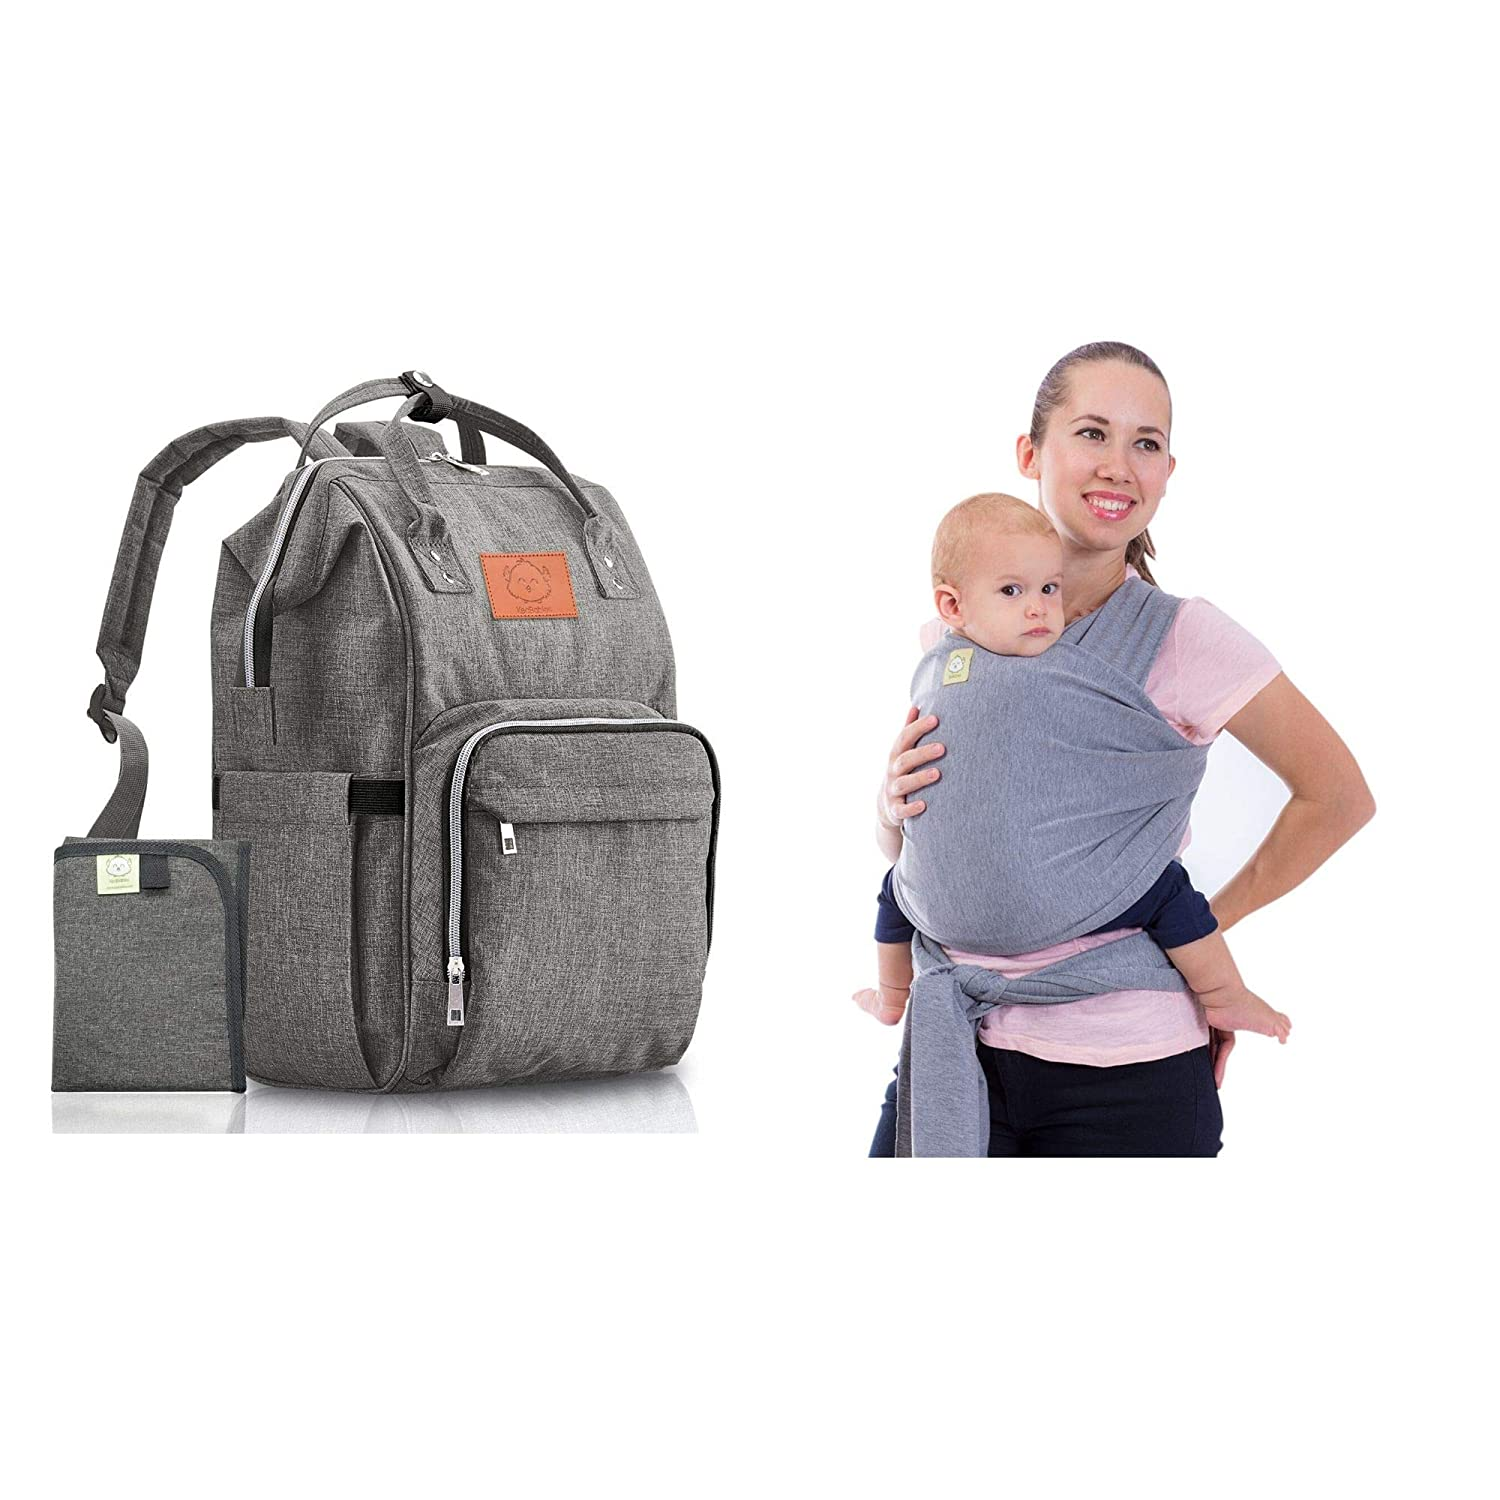 KeaBabies-Diaper-Bag-&-Baby-Wrap-Carrier-Bundle/